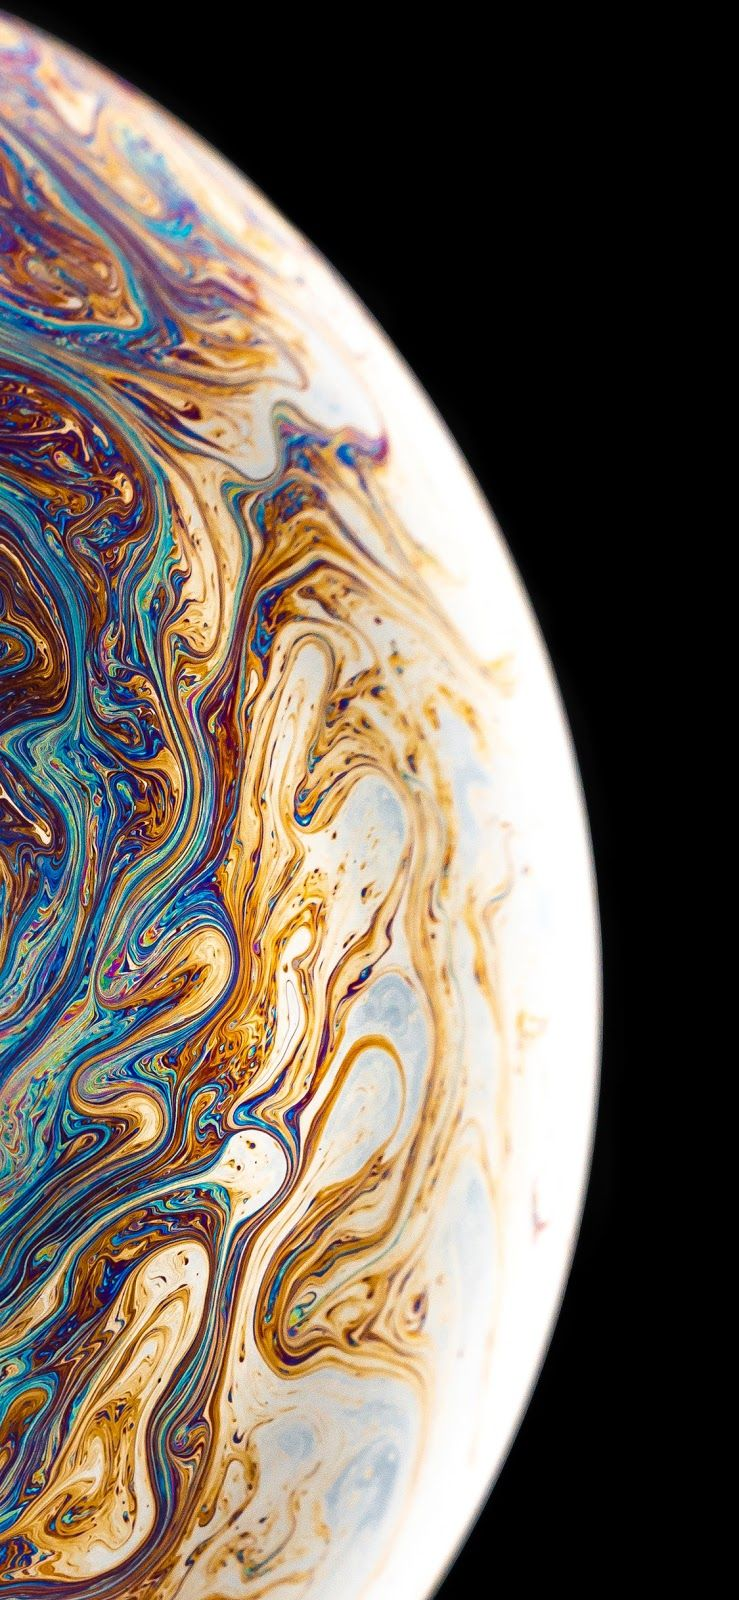 Abstract Bubble Iphone X Phone Wallpapers X Sfondi Per Iphone